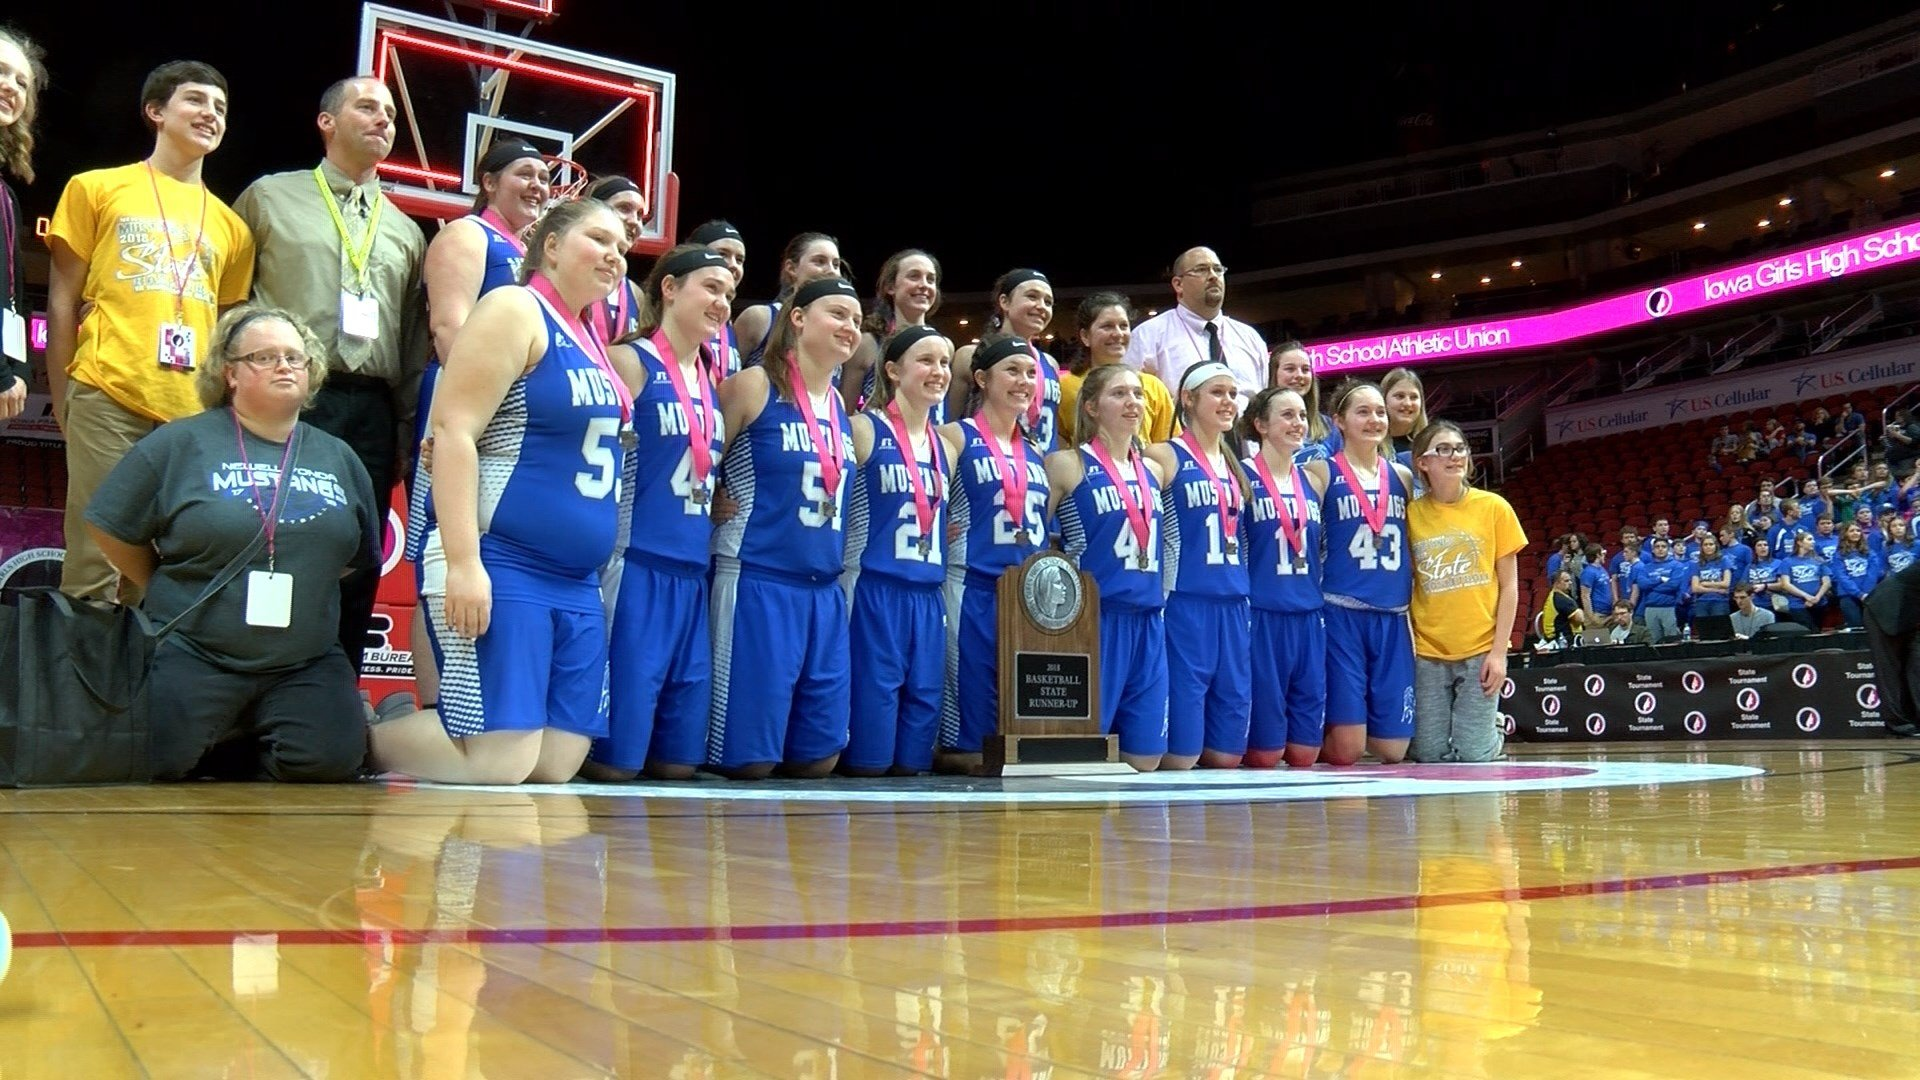 Newell-Fonda lost to Springville in the Class 1A title game, 60-49.